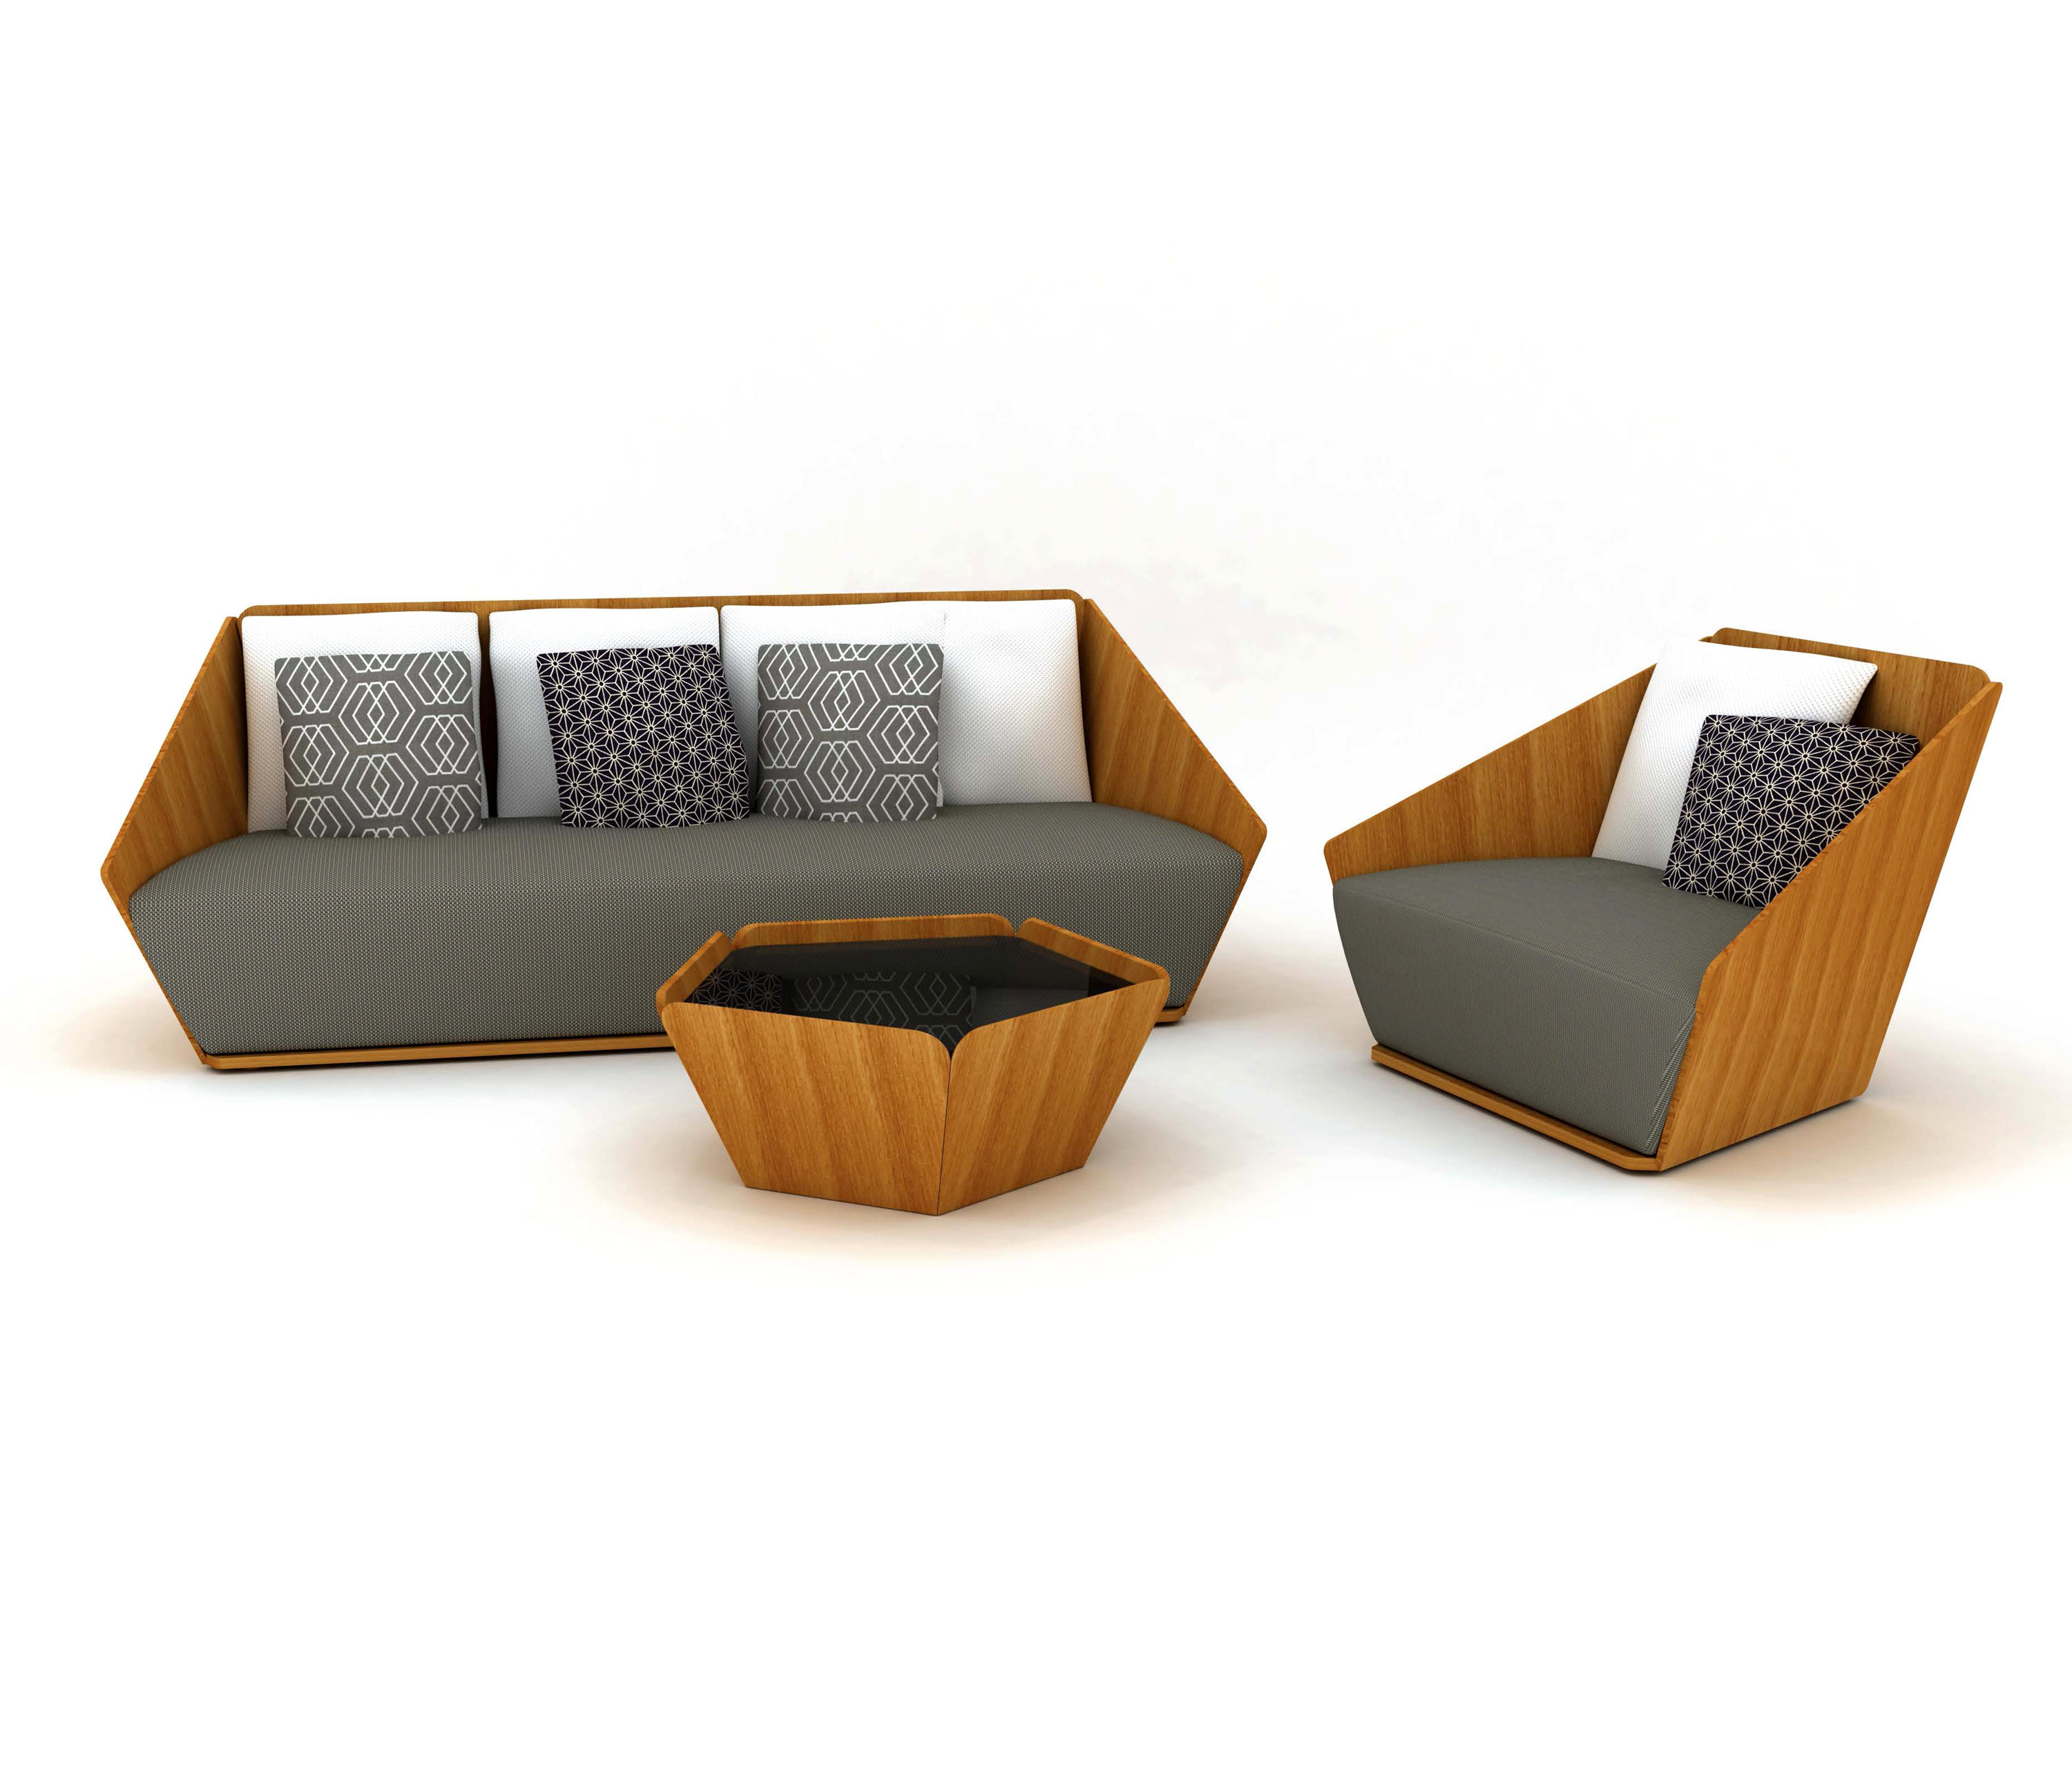 ORIGAMI - Sofas from Deesawat | Architonic - photo#38